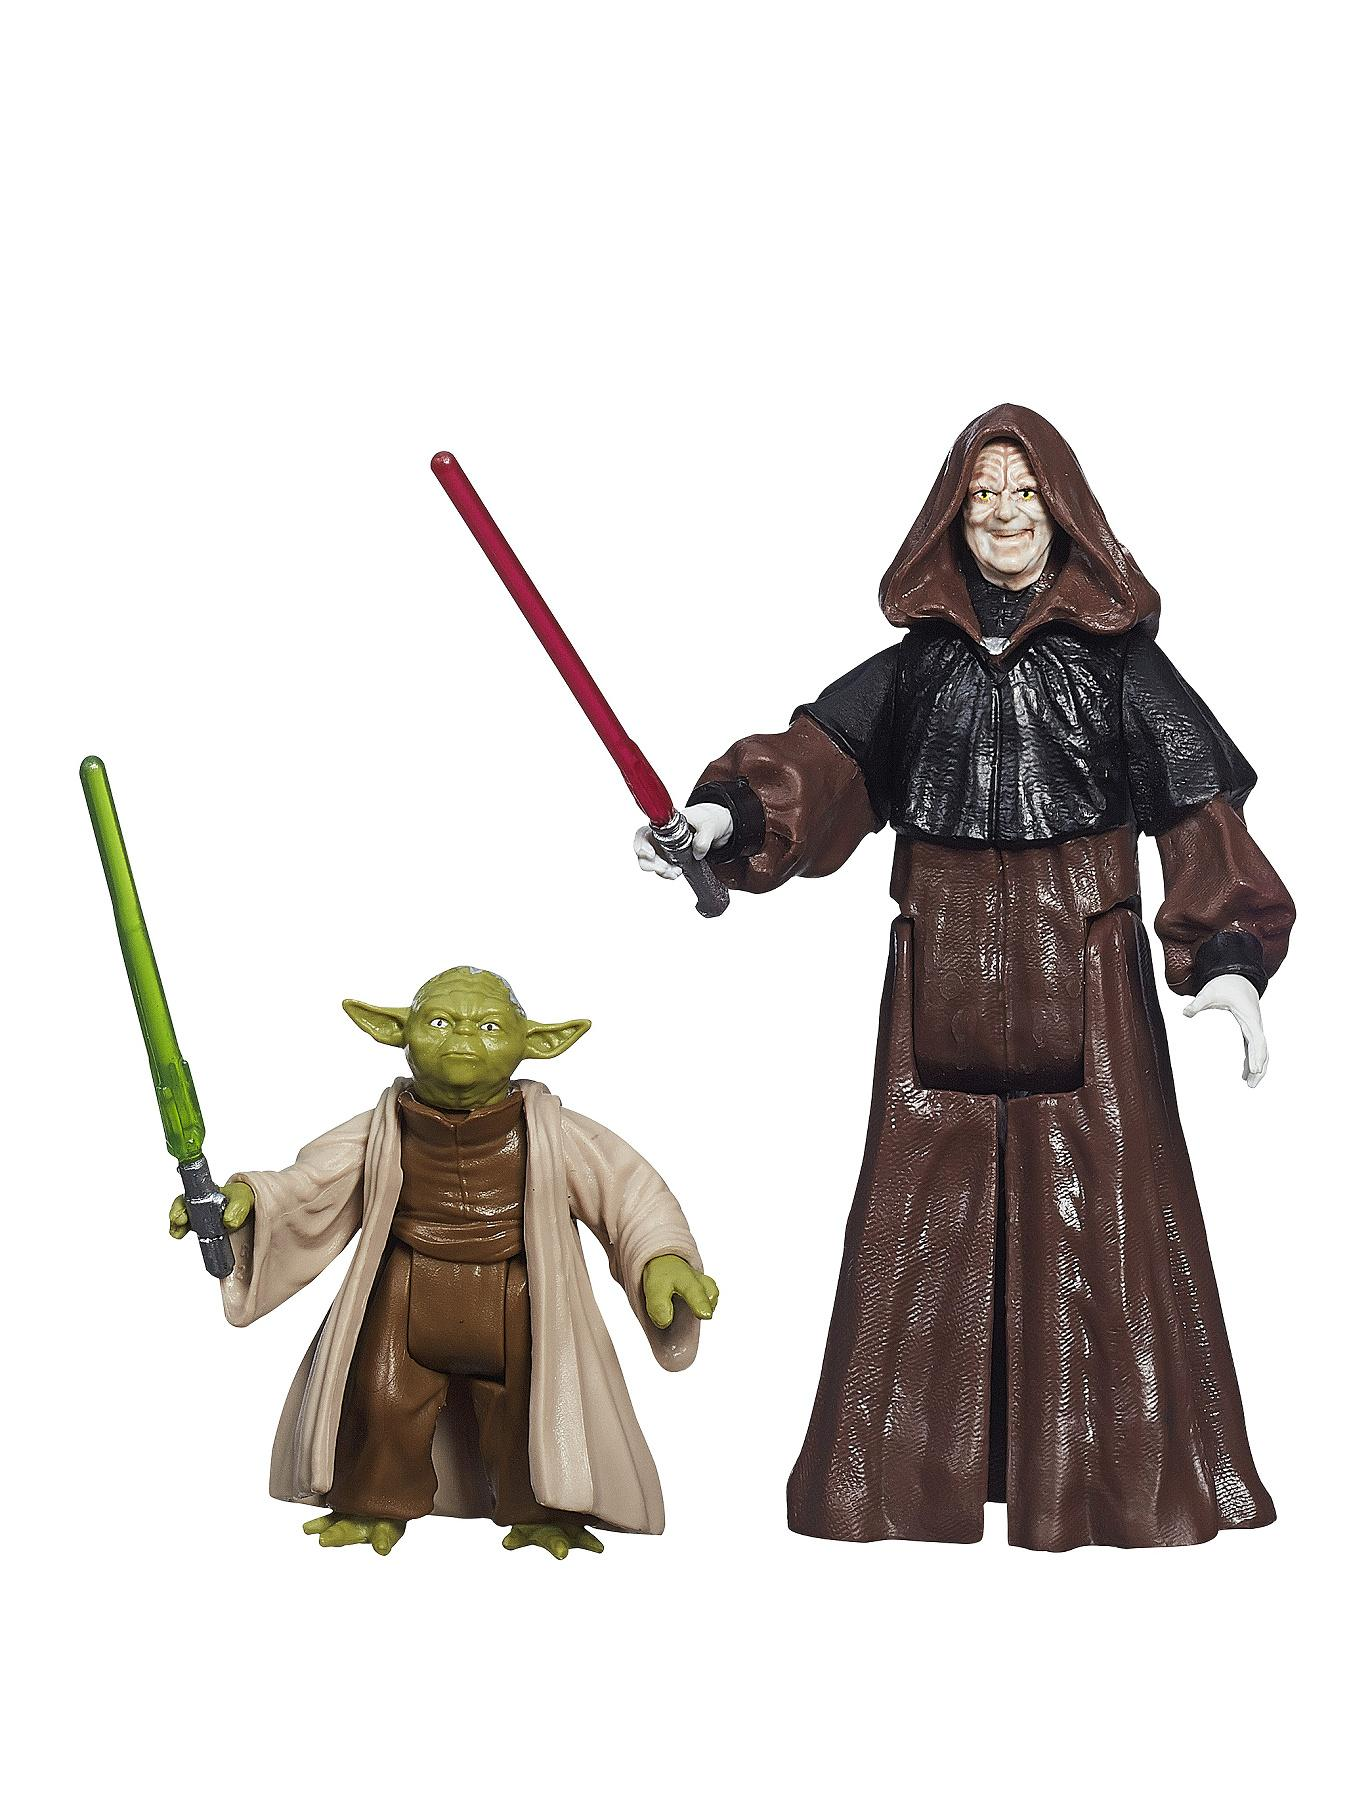 Star Wars Mission Series Figure - Episode 2 Yoda & Darth Sidious